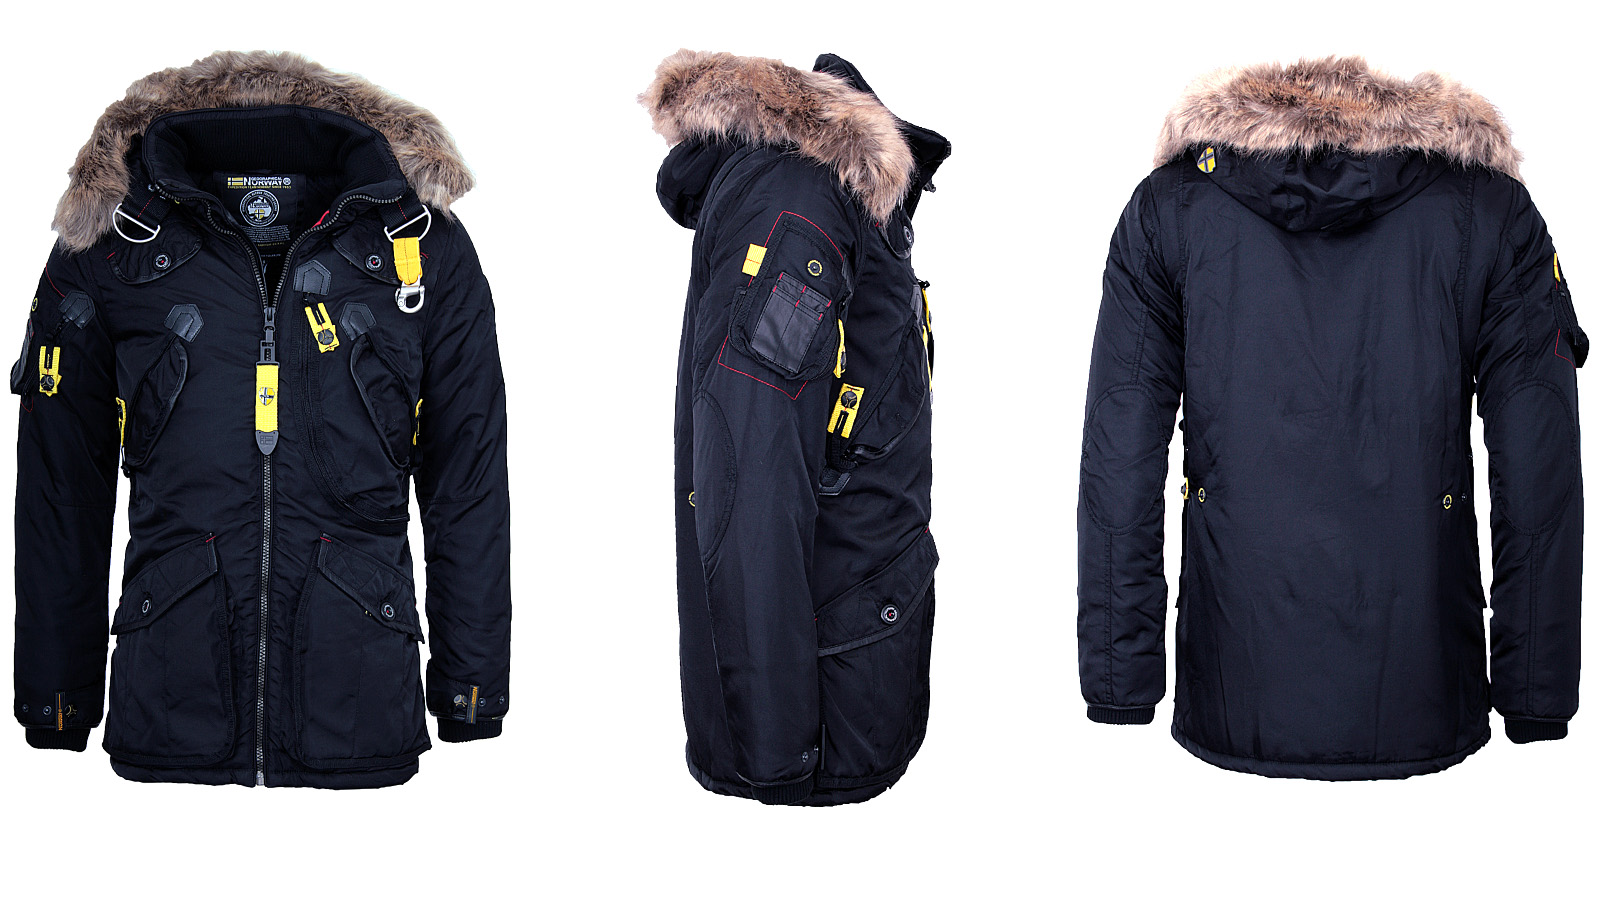 geographical norway warm mens winter jacket parka anorak. Black Bedroom Furniture Sets. Home Design Ideas